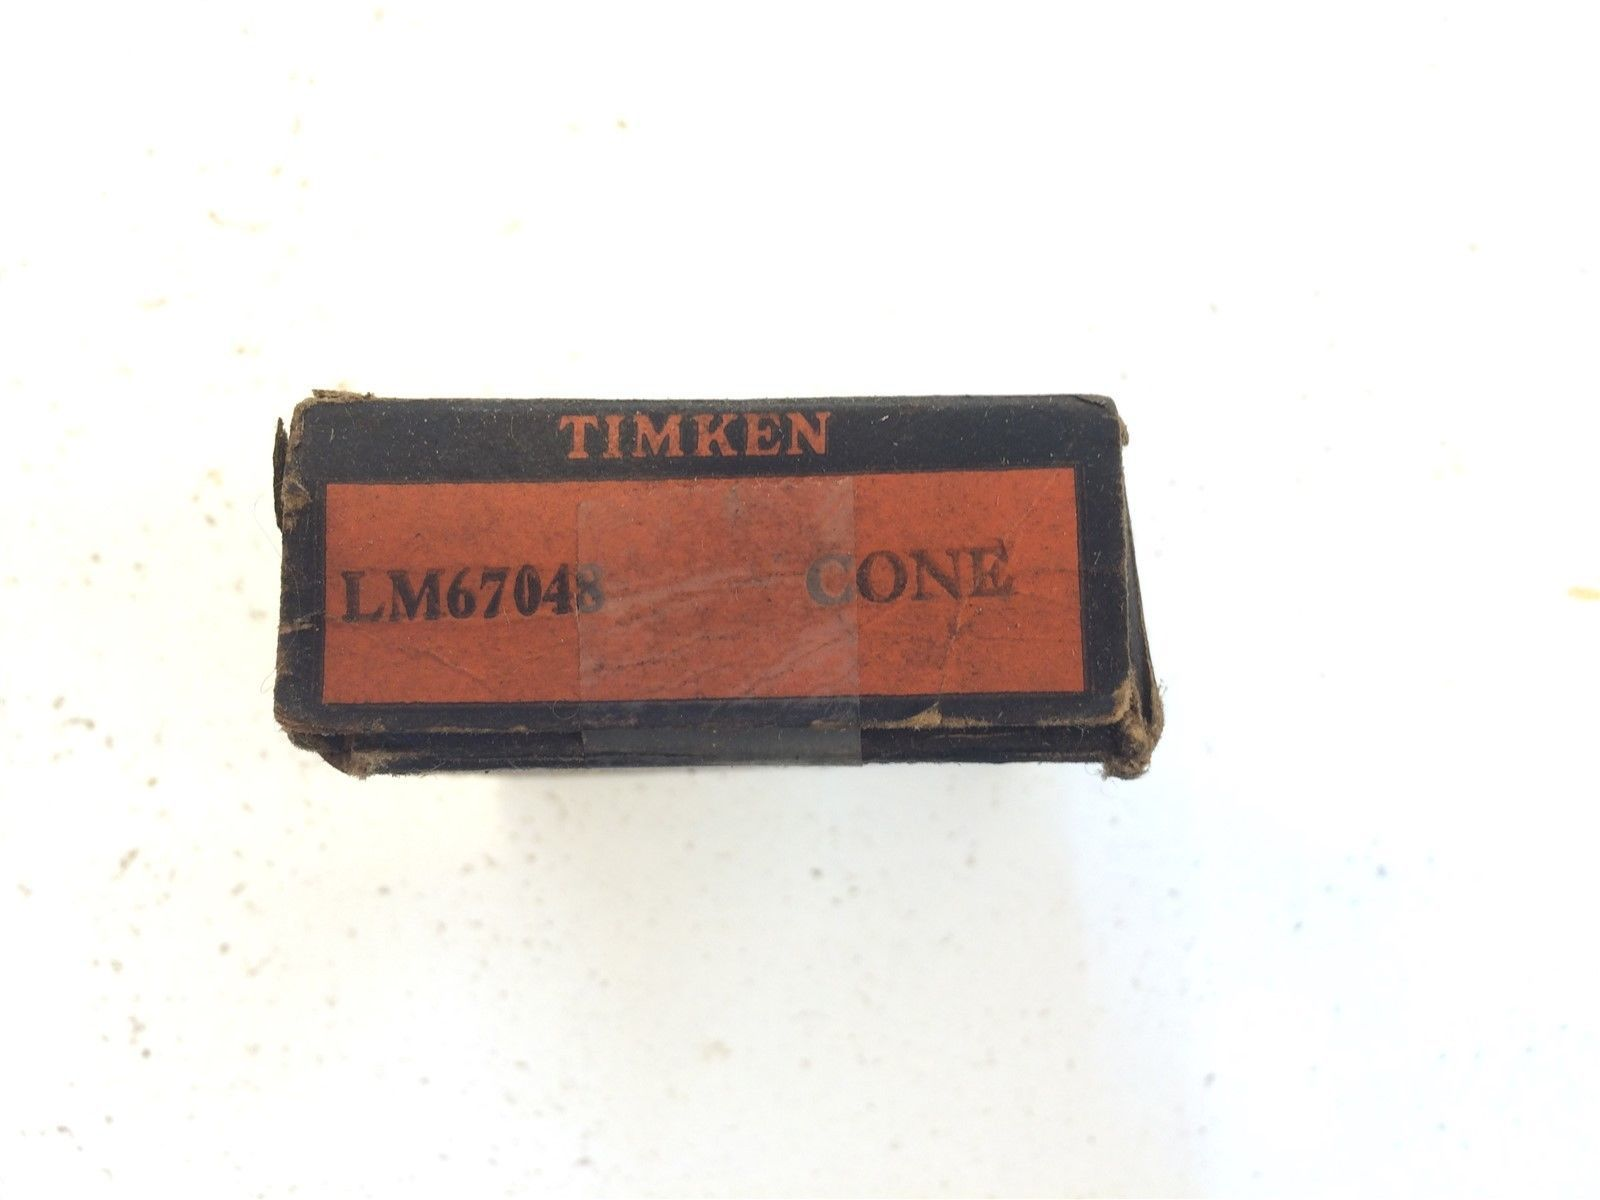 Vintage Timken Tapered Roller Bearings LM67048 Cone Made in USA